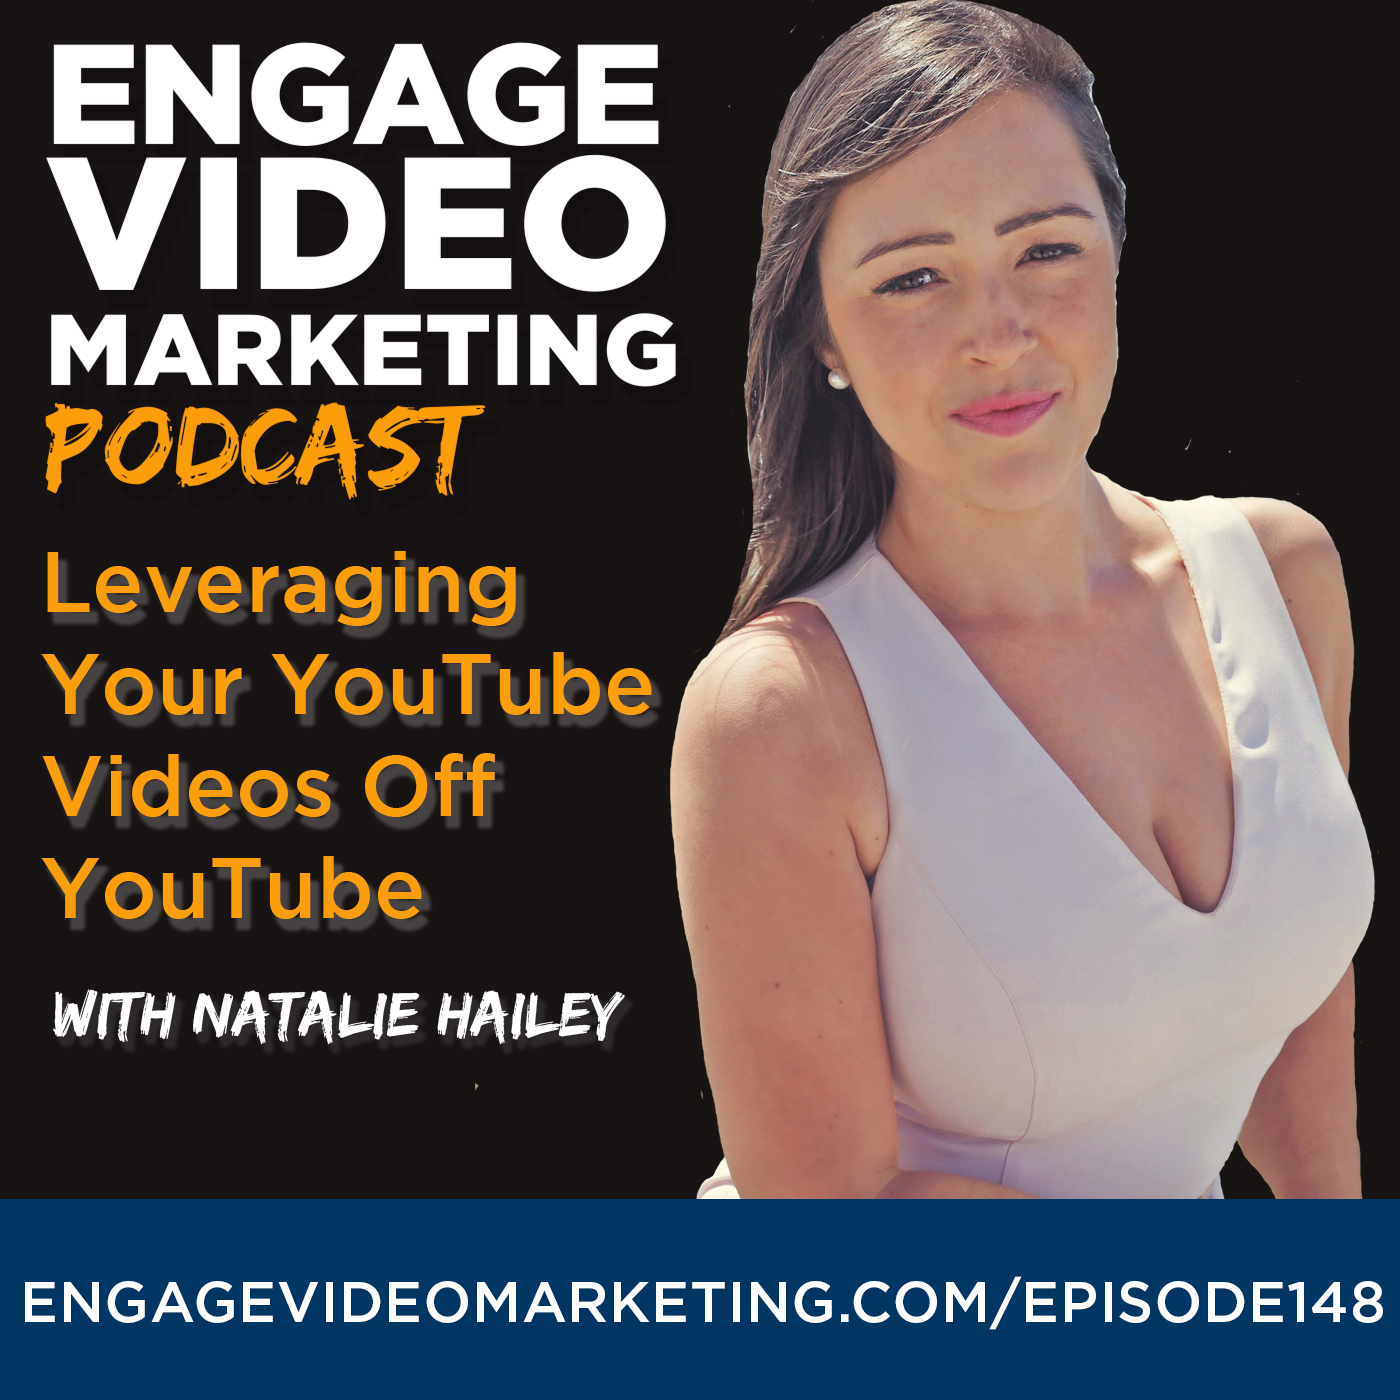 Leveraging Your YouTube Videos Off YouTube with Natalie Hailey